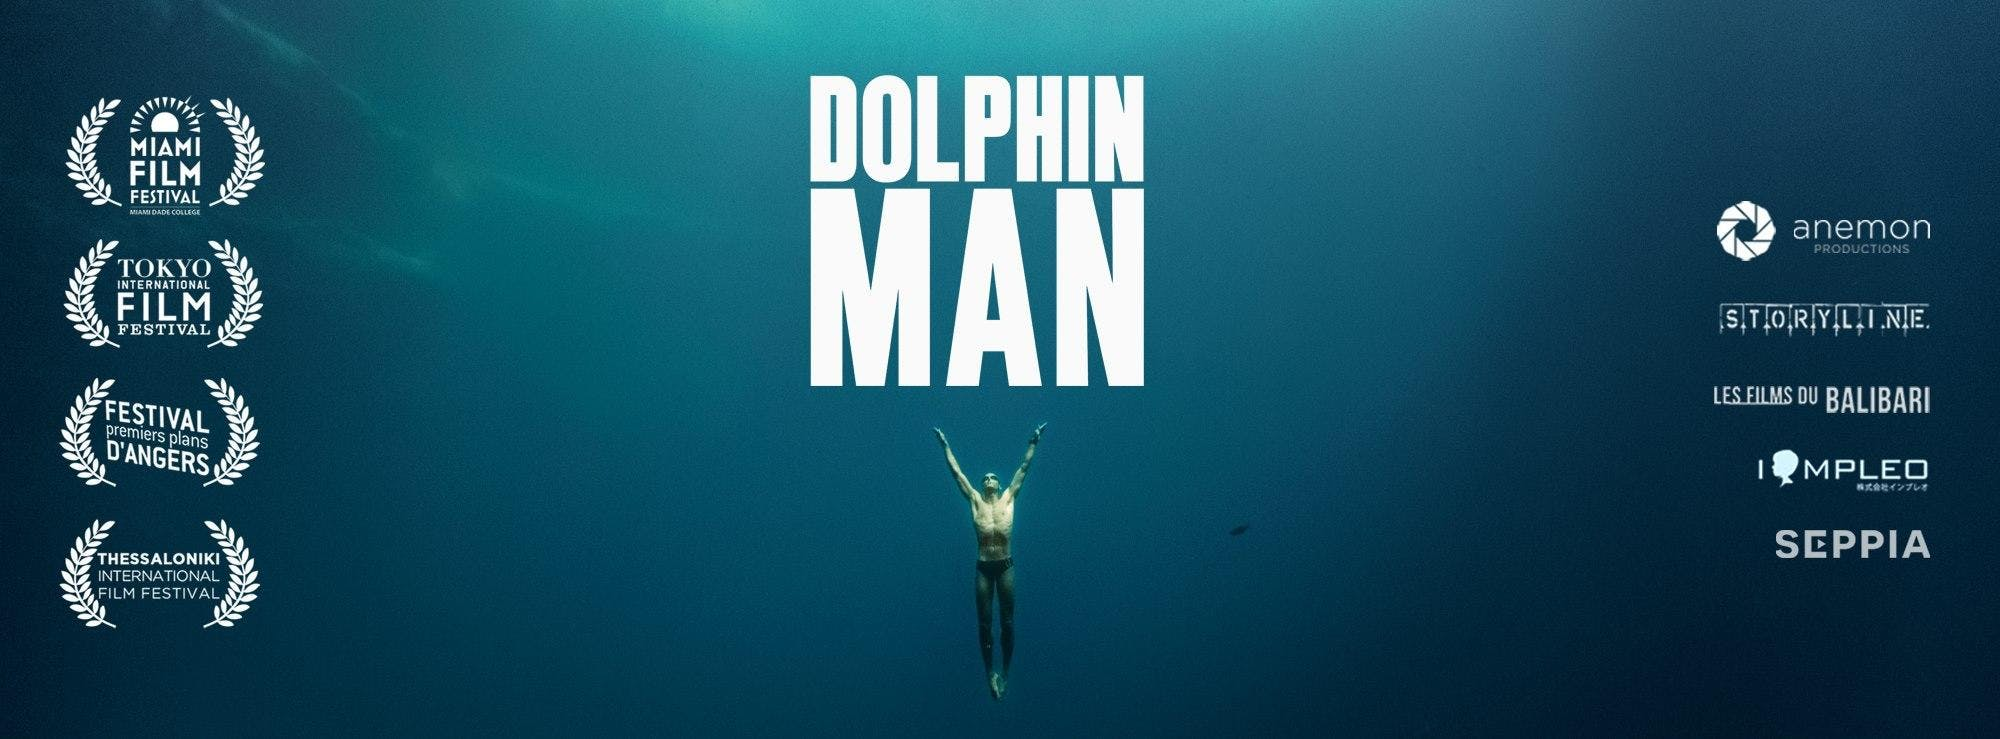 Masterclass | Dolphin Man: Making A Film Around The World